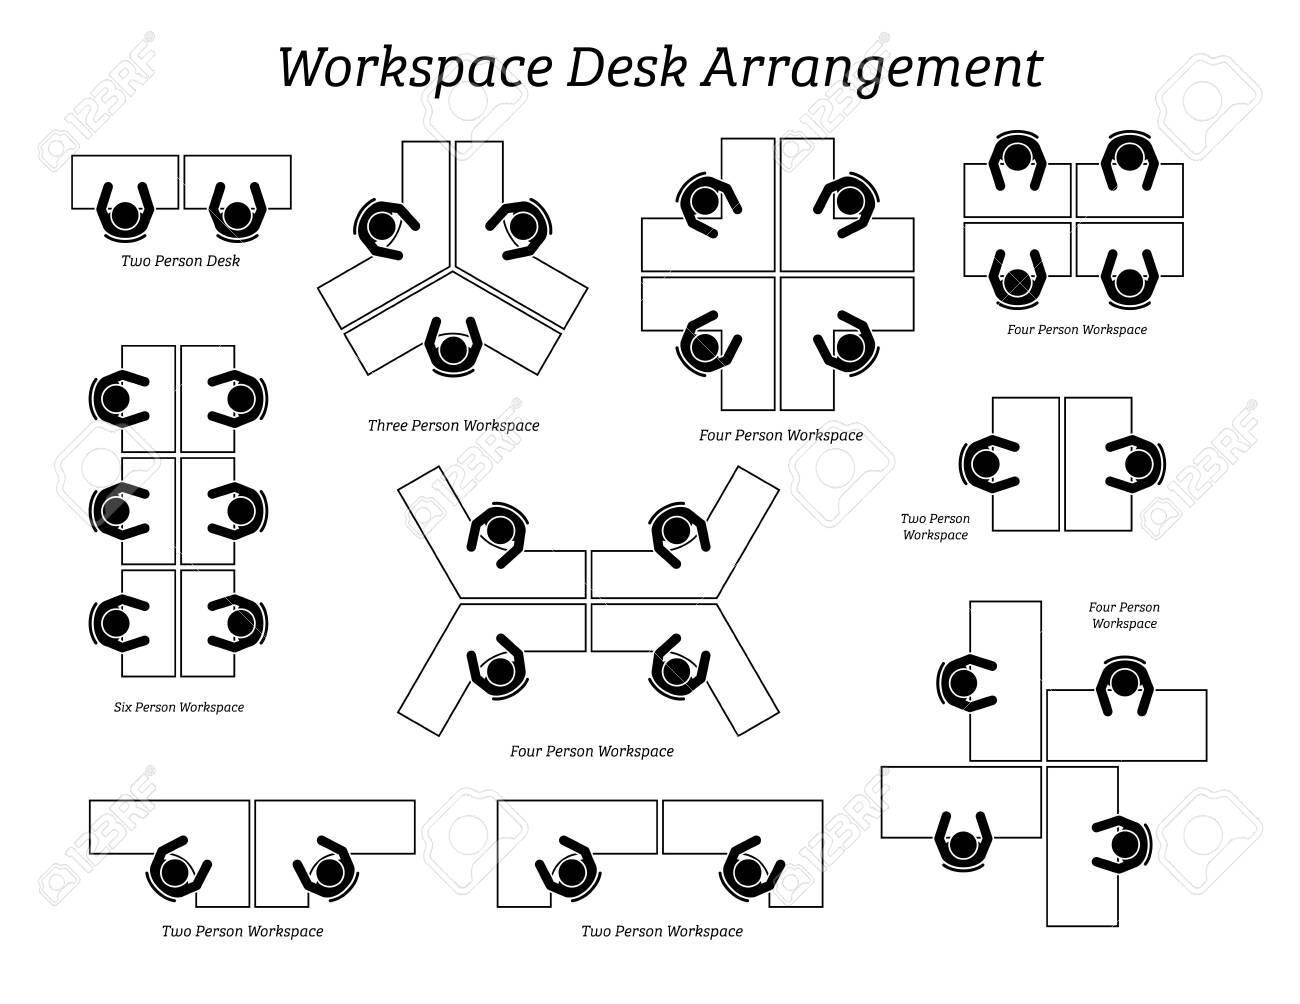 Workspace desk arrangement in office and company. Pictogram icons depict the top view of table arrangement and seatings for office employees, staffs, and workers. - 134201522